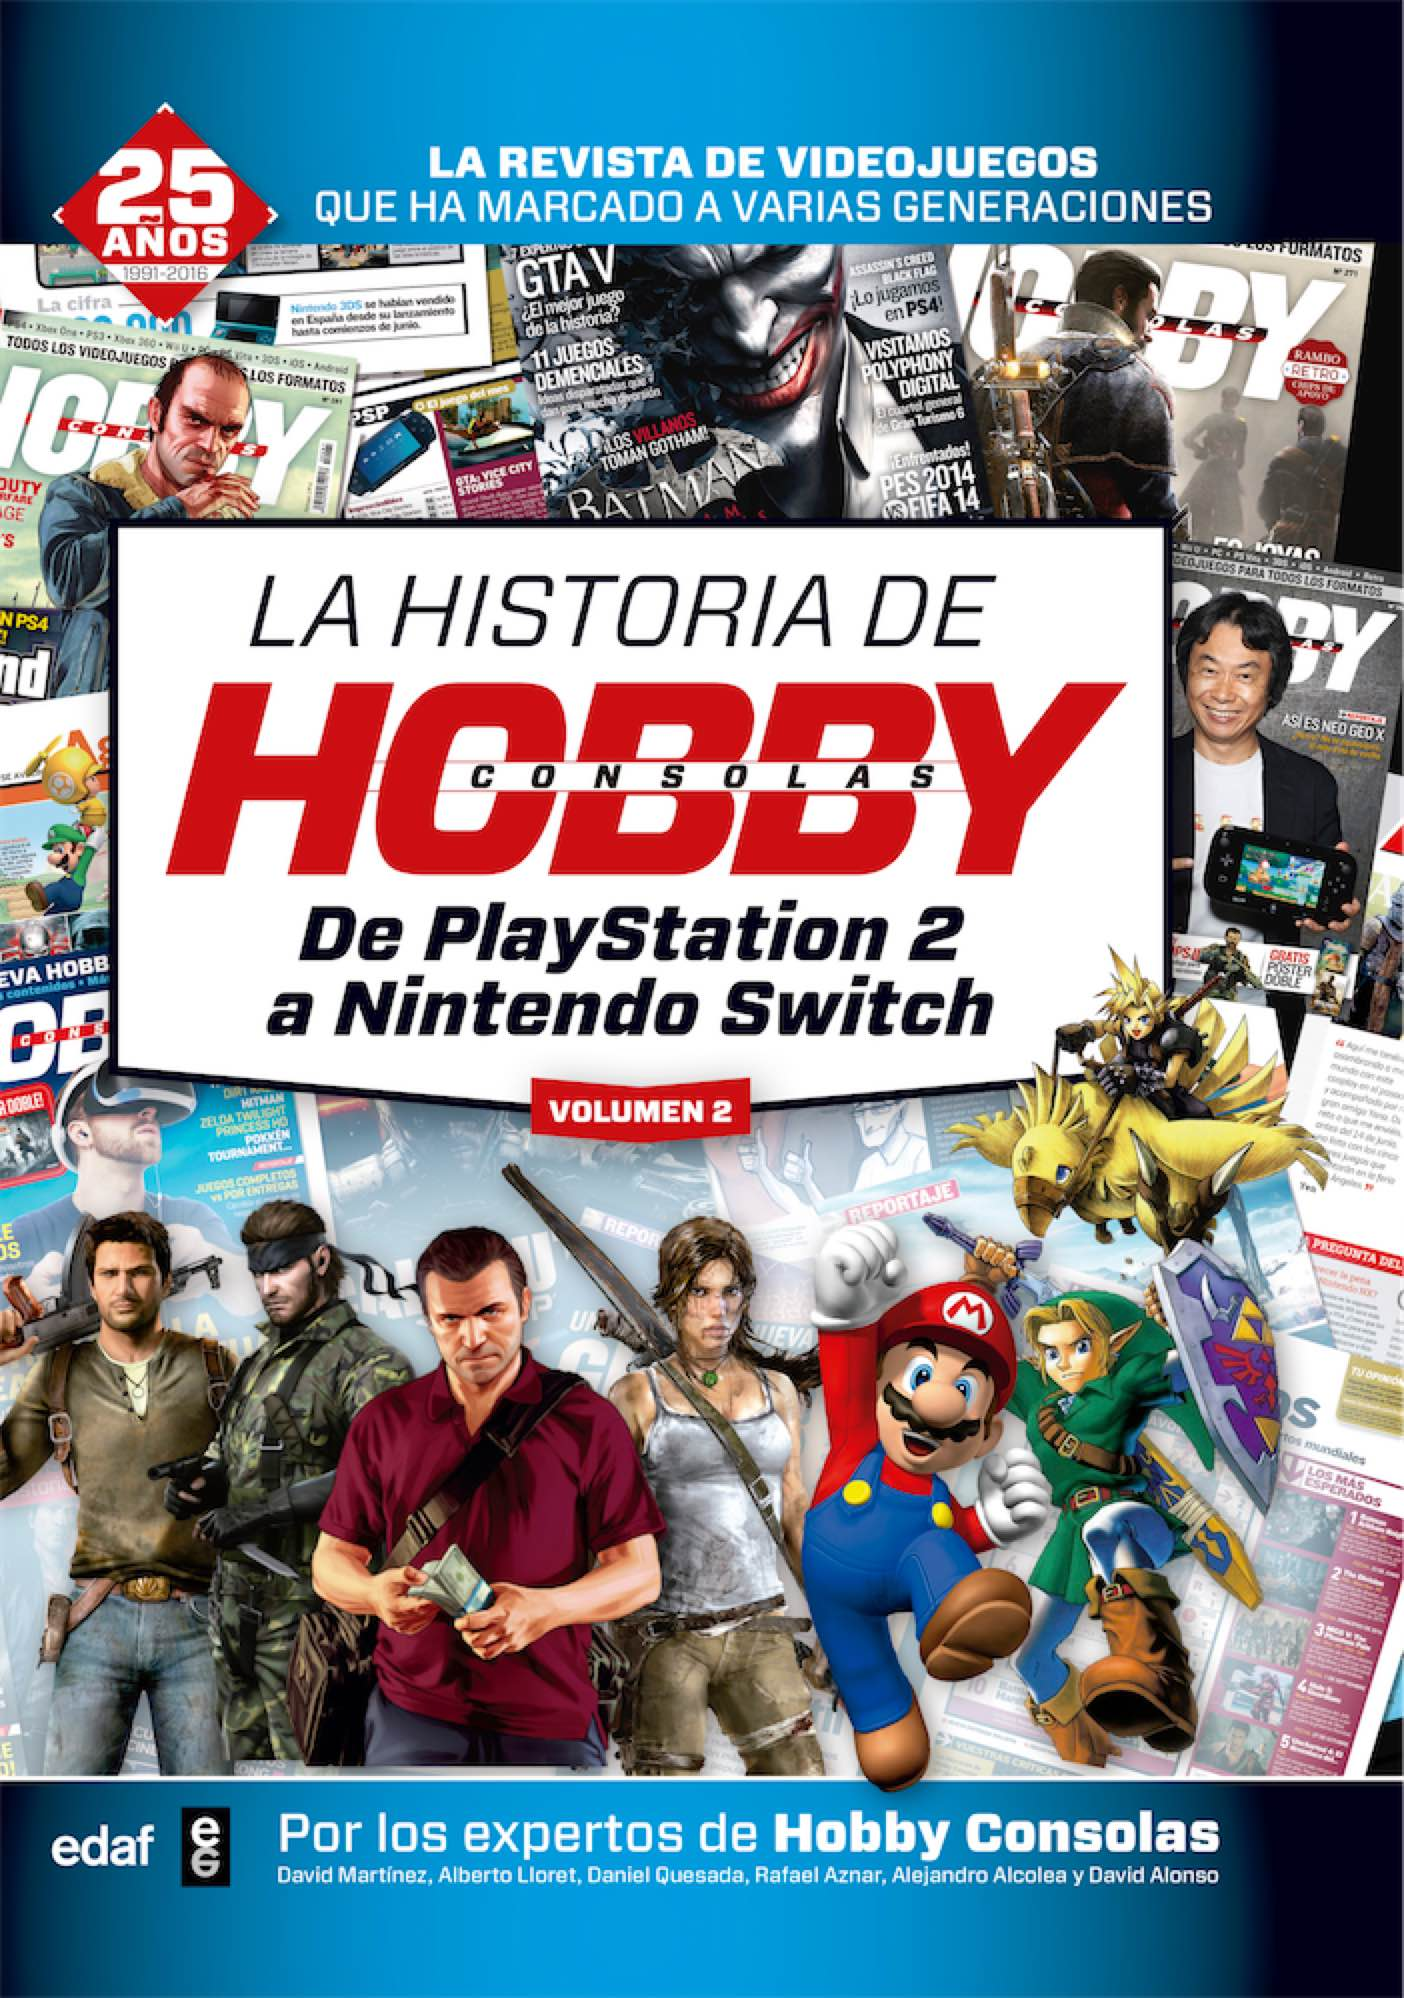 LA HISTORIA DE HOBBY CONSOLAS VOL.2: DE PLAYSTATION 2 A NINTENDO SWITCH